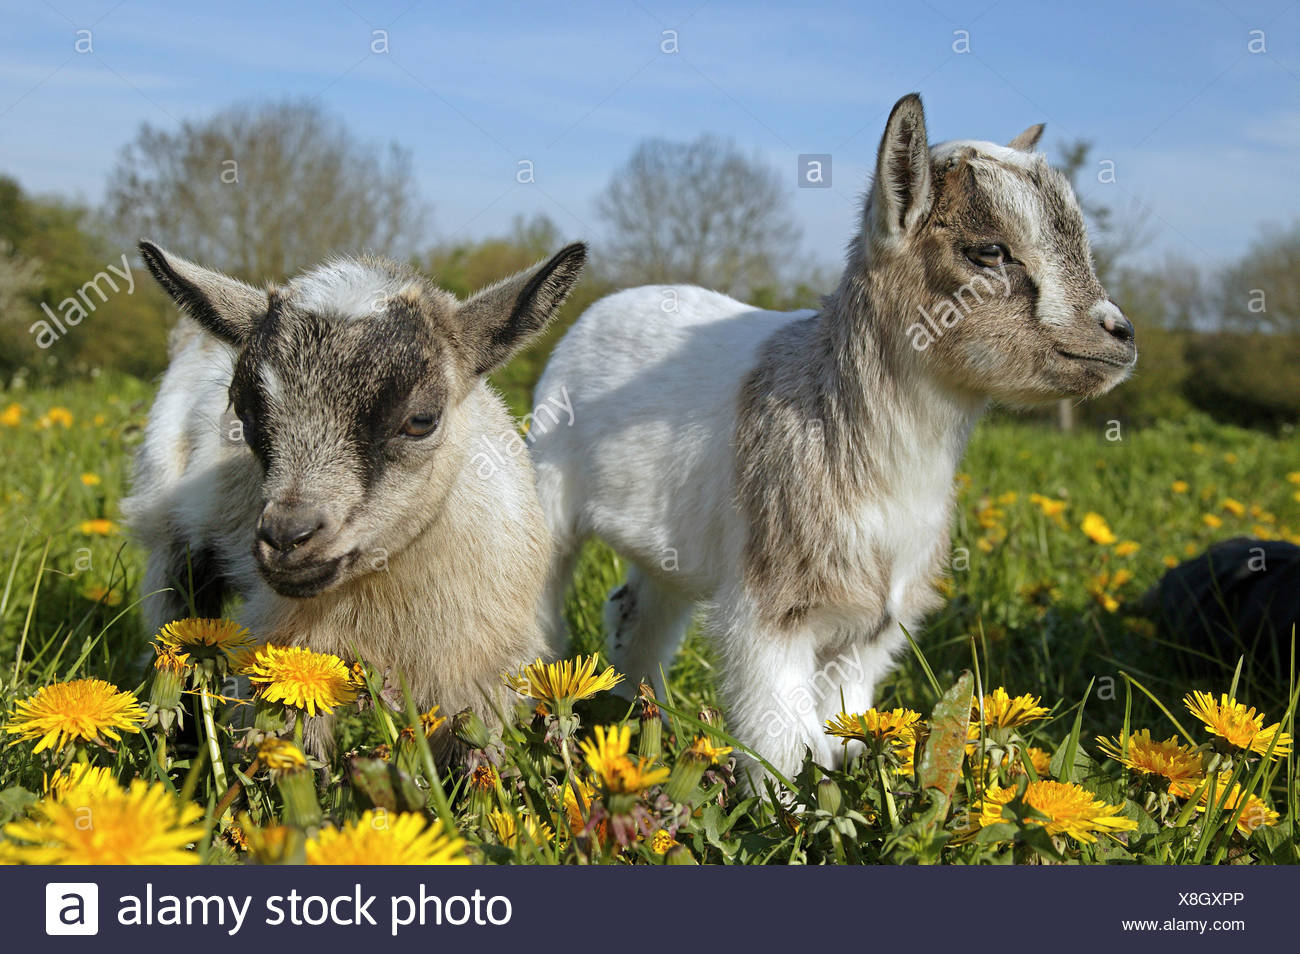 PYGMY GOAT OR DWARF GOAT capra hircus, 3 MONTHS OLD BABY WITH FLOWERS - Stock Image